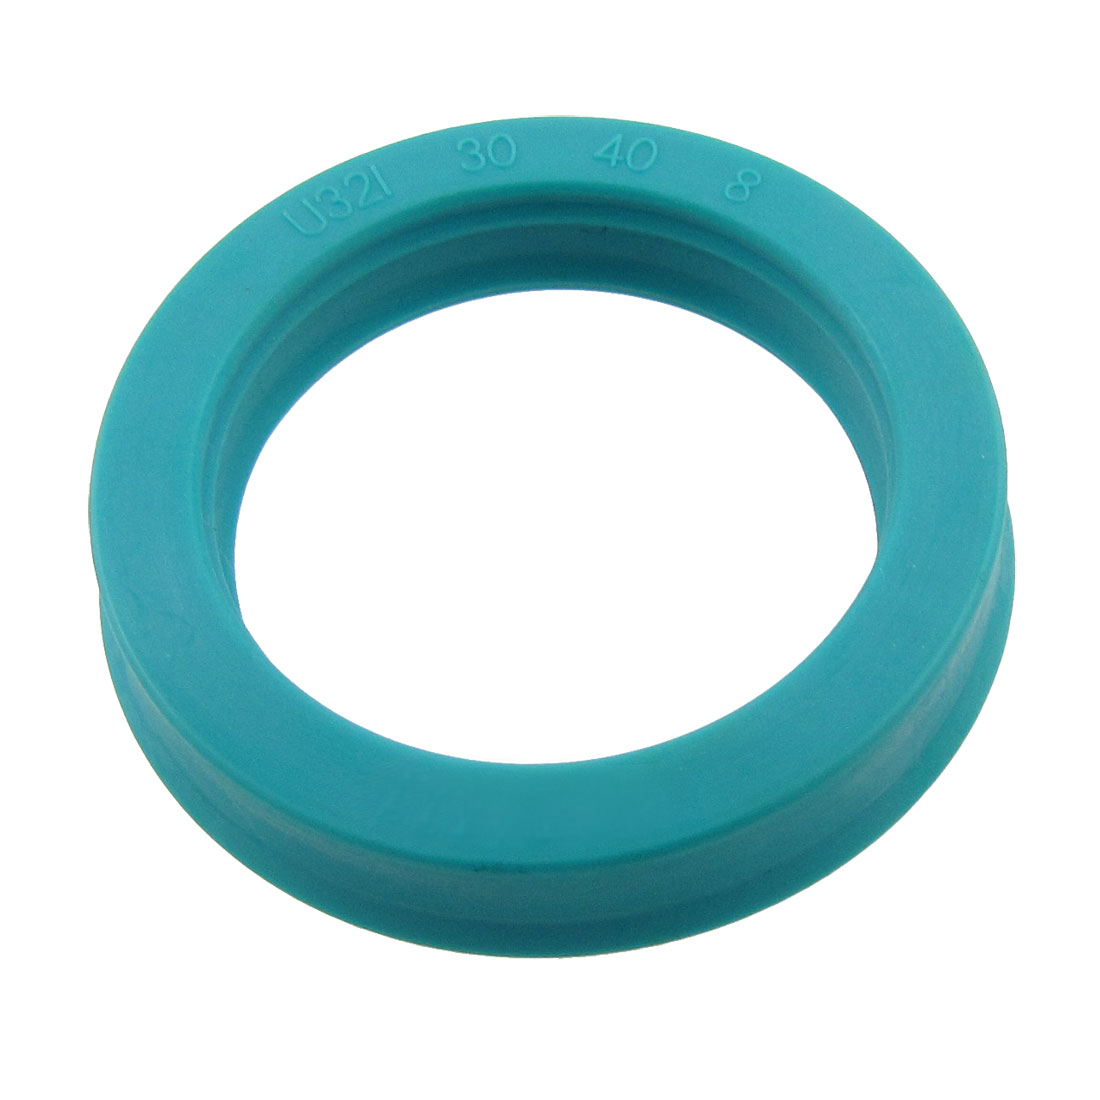 Metric 30 x 40 x 8mm Single Lip Piston Rod Oil Grease Seal U32i